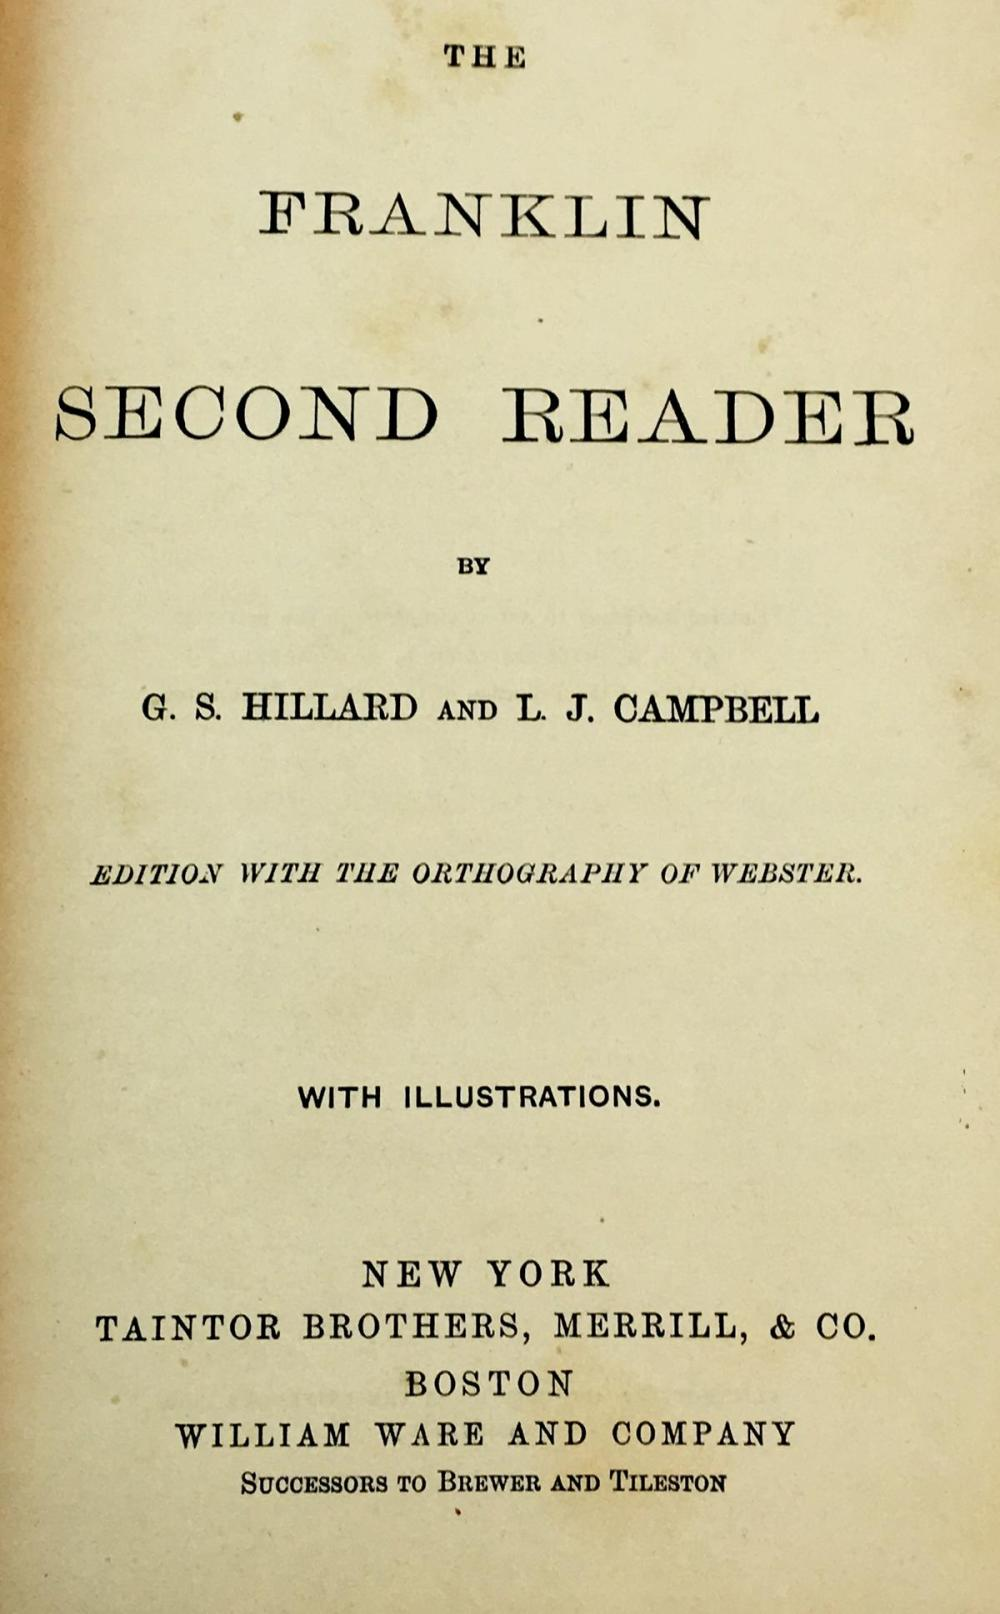 1873 The Franklin Second Reader by G.S. Hillard and L.J. Campbell FIRST EDITION